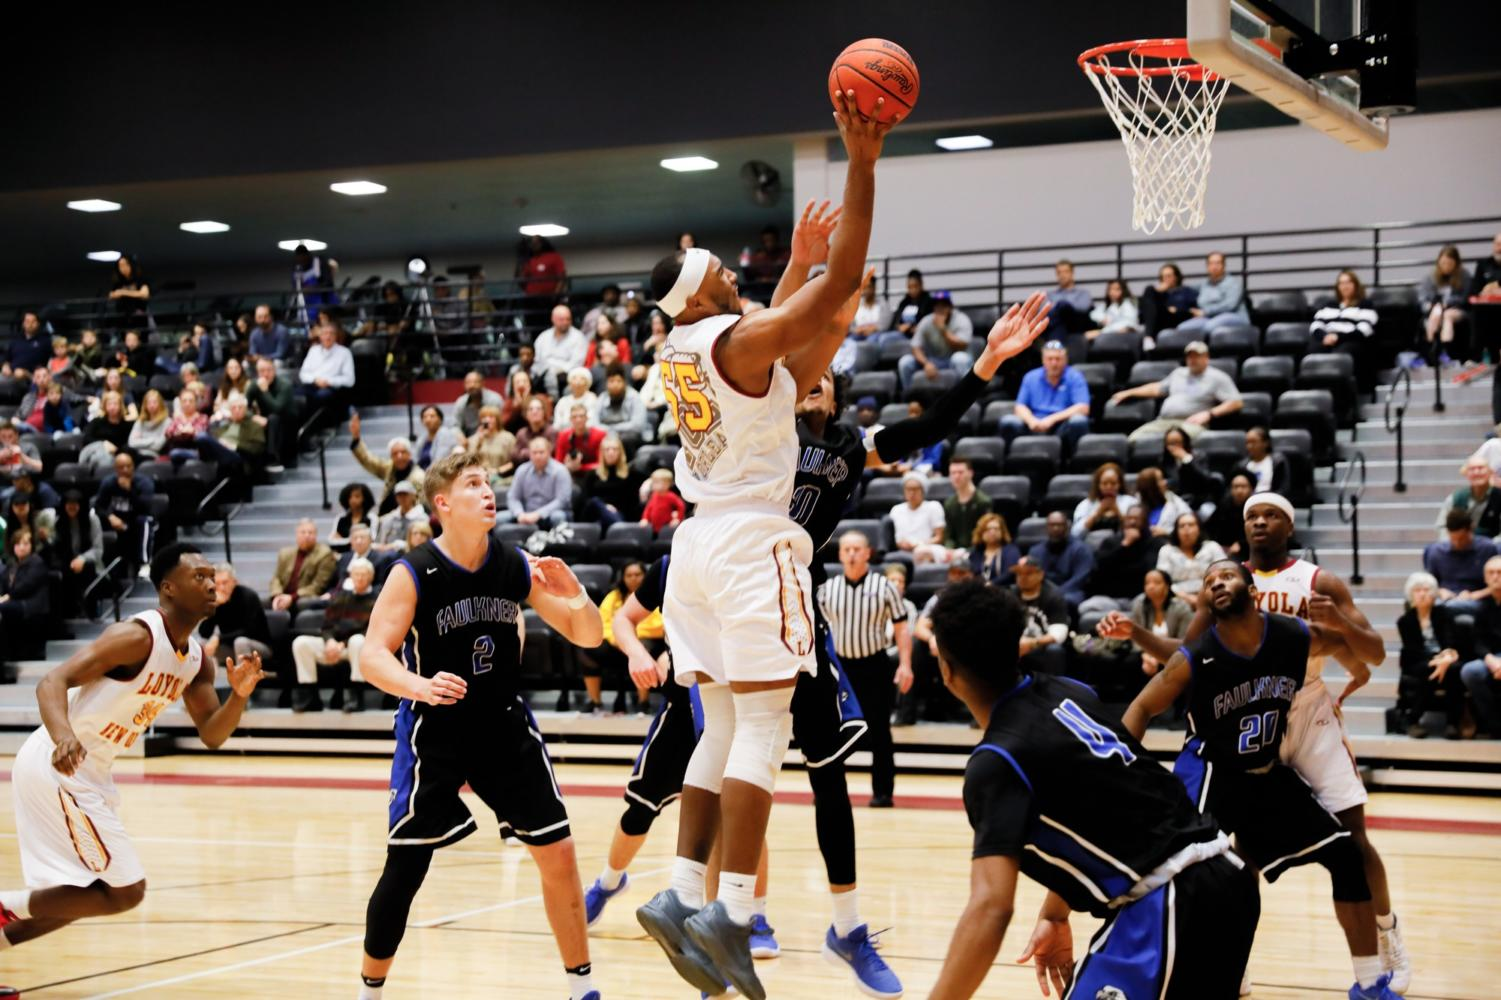 Senior, #55 Benjamin Fields, rebounds and shoots the ball. Fields led the team with a total of 14 points at the Faulkner University game in the den Jan. 20, 2018. Photo credit: Julia Santos